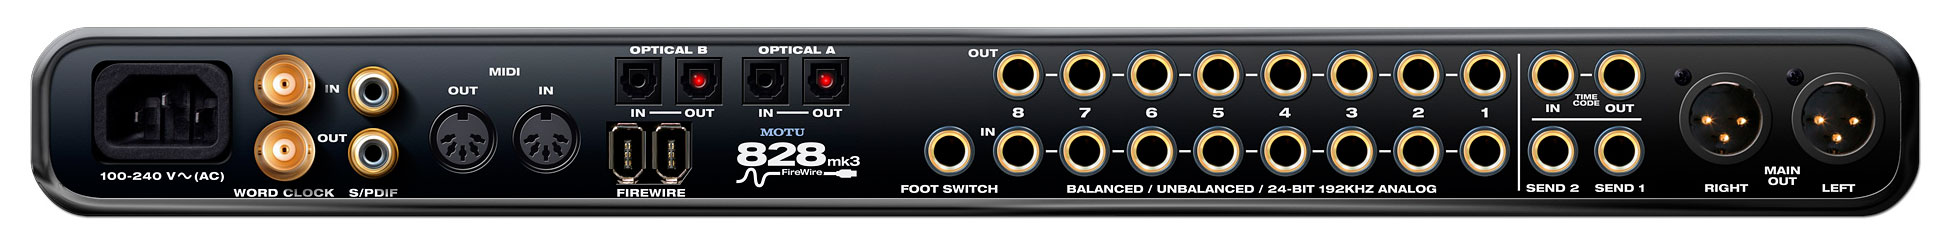 MOTU - 828 MK3 Advanced FireWire Audio Interface with DSP ...